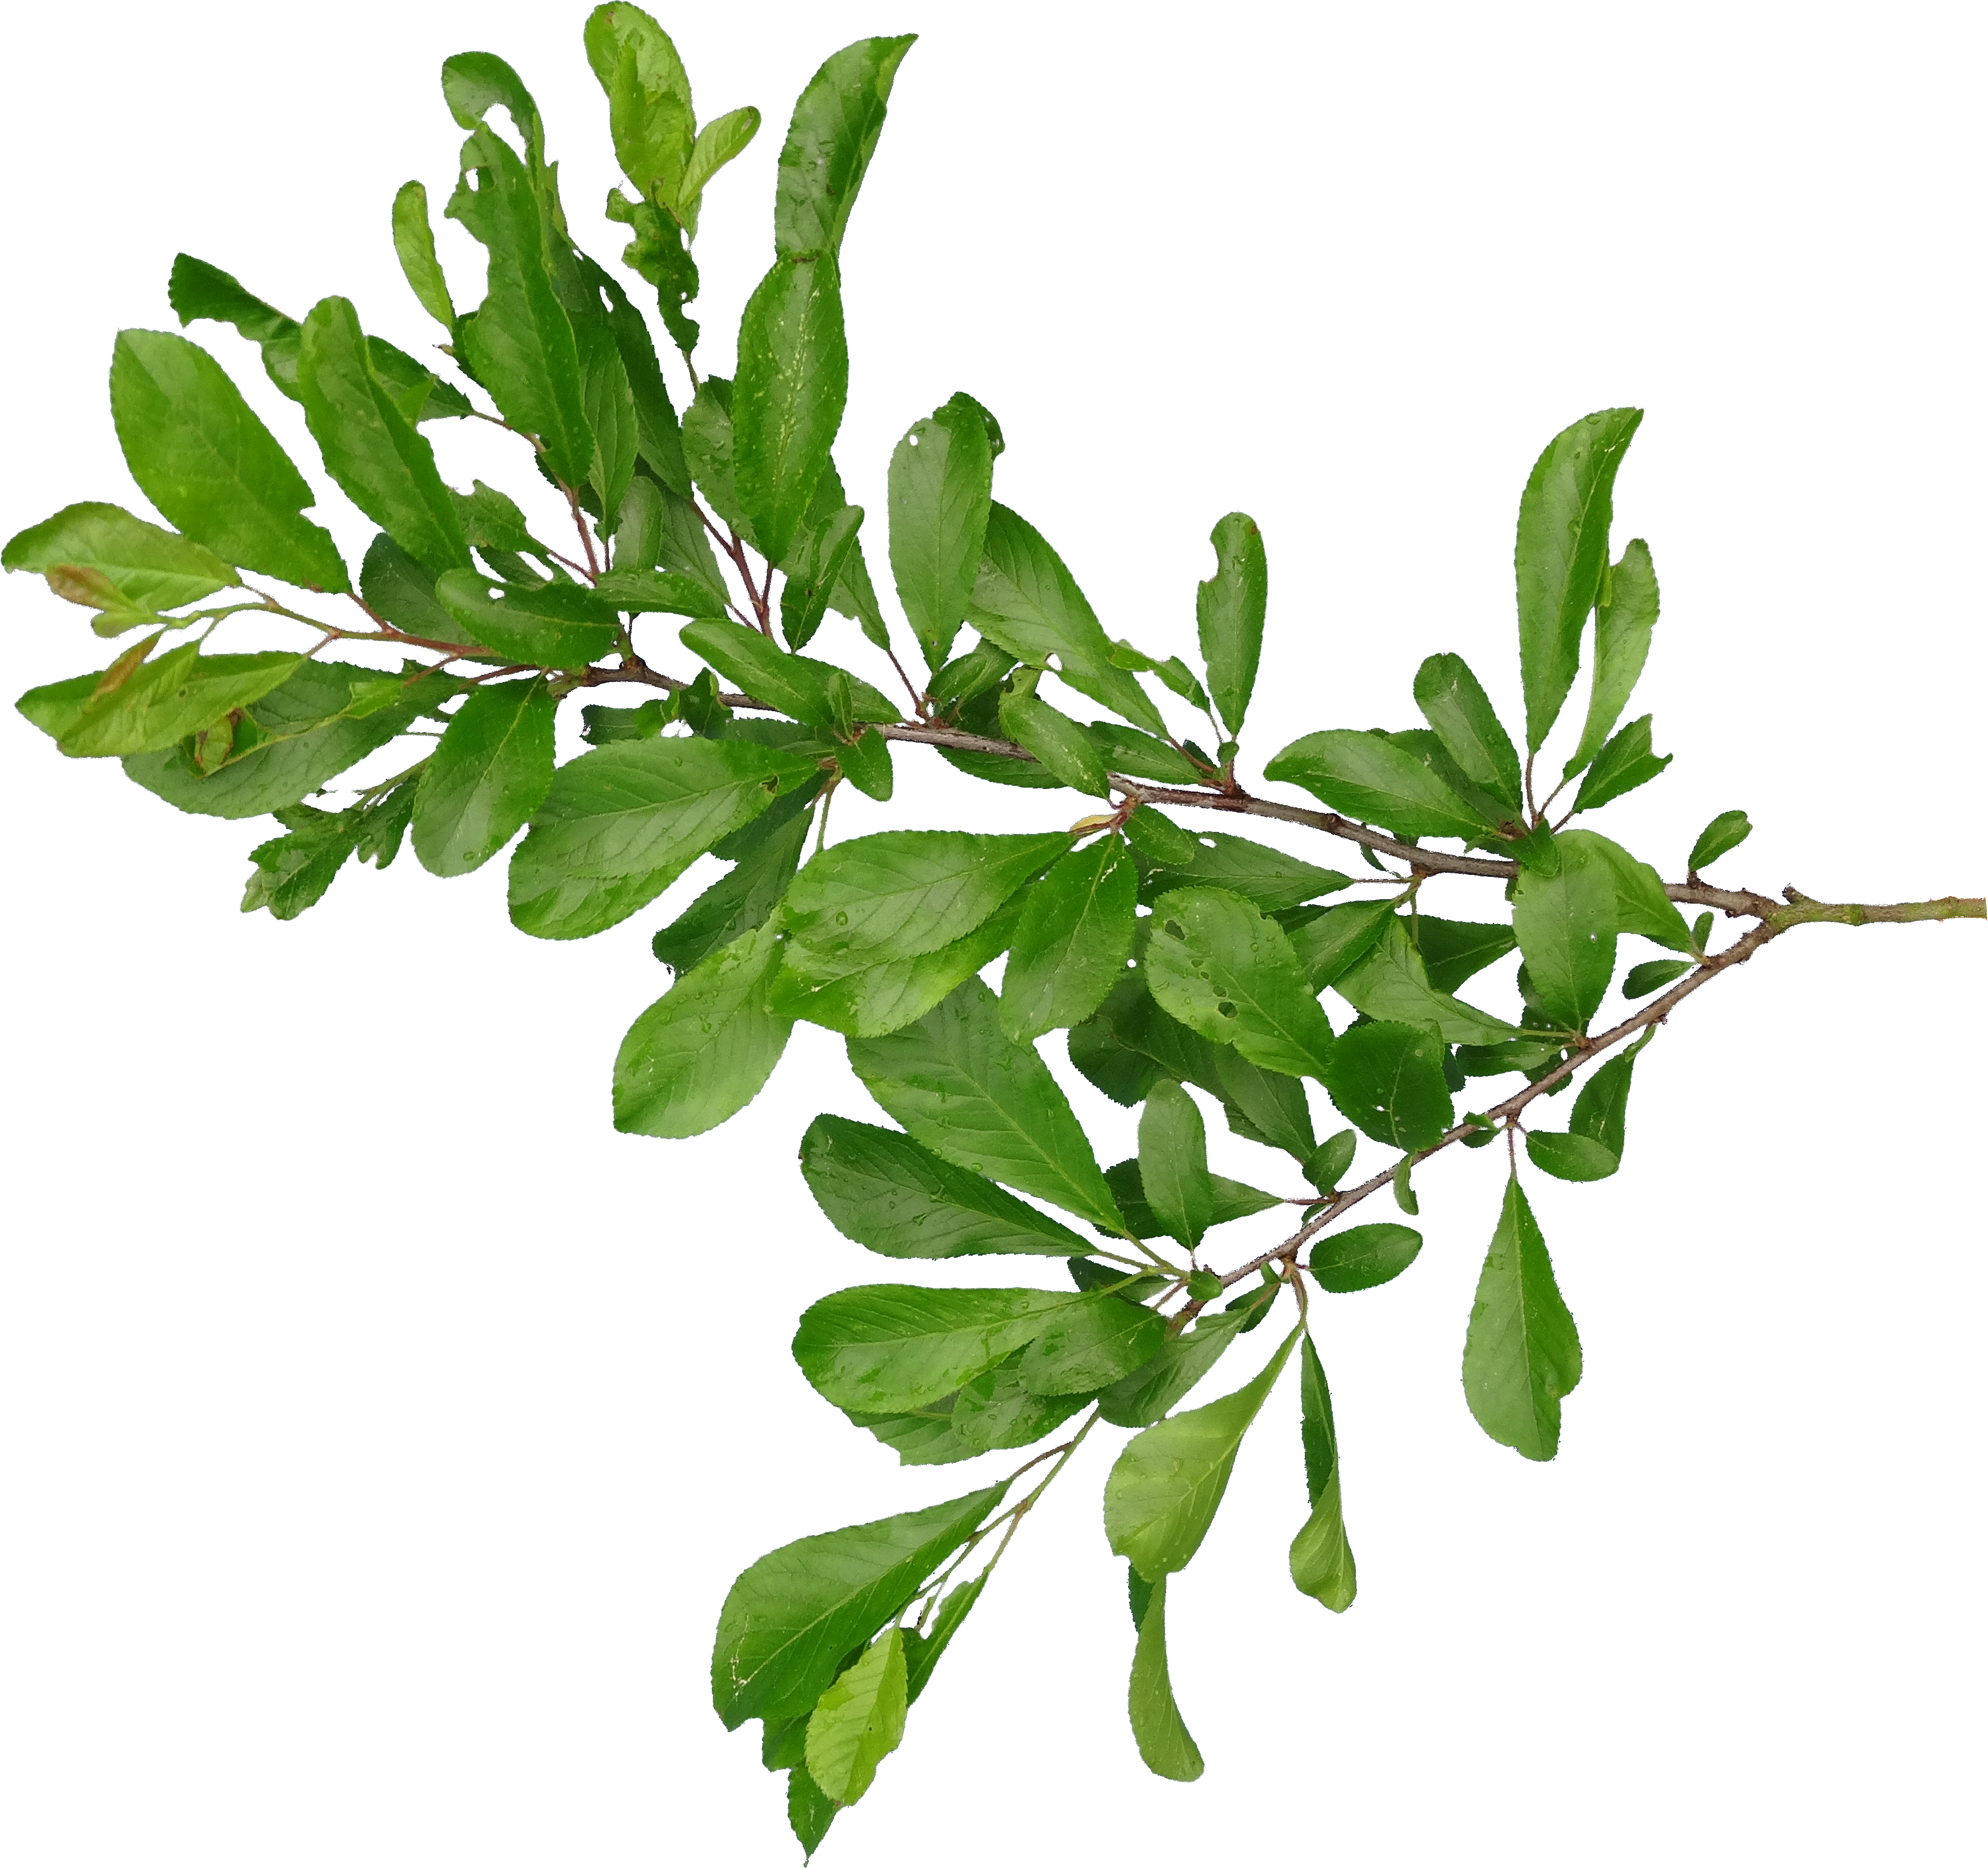 Png images of branches with apples. Afbeeldingsresultaat voor branch gmp